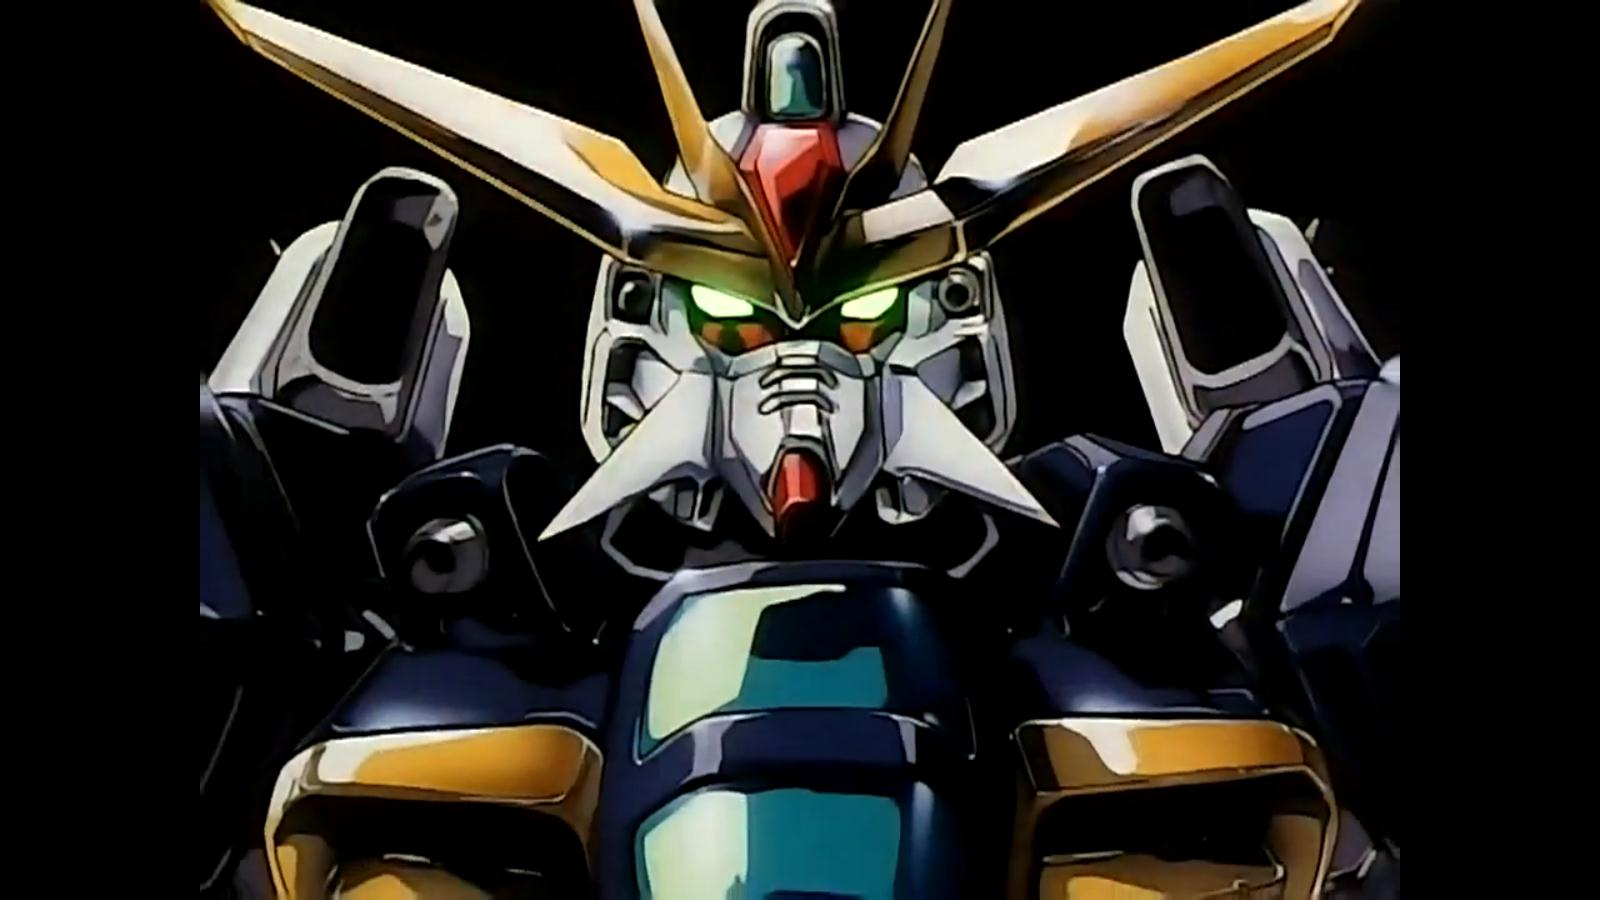 Hd Gundam Themes: After War Gundam X 2nd Opening Theme Song Full And Actual